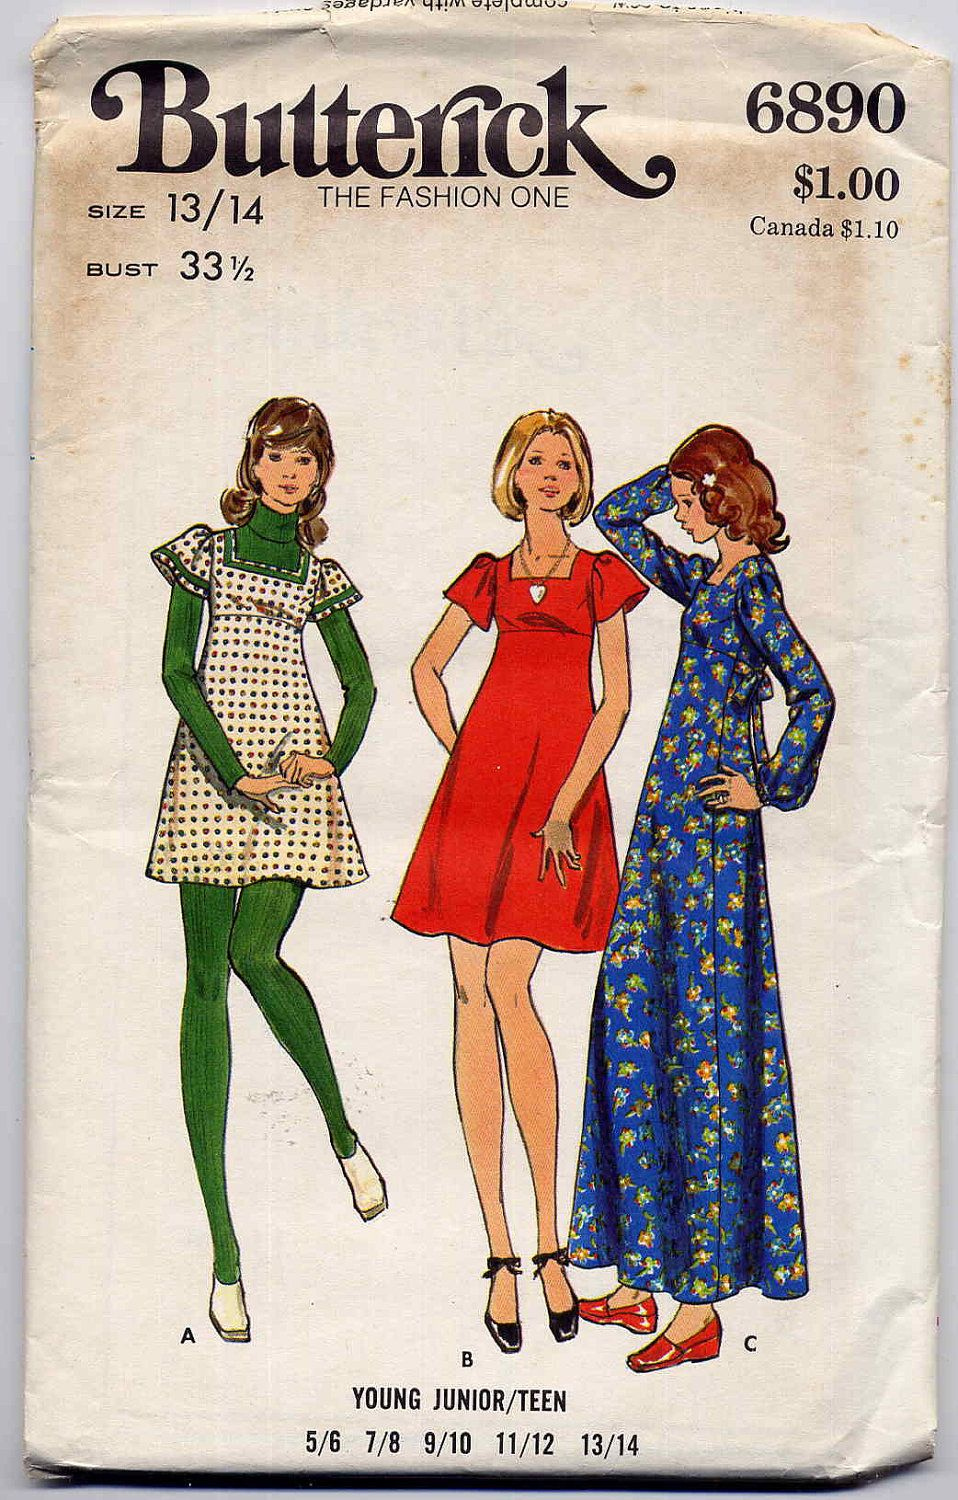 013946ec7d2 Sweet 70's Flared Empire Baby Doll Dress with Square Neckline Mini Maxi  Vintage Sewing Pattern Butterick 6890 --Junior Teen Bust 33.5. $4.00, via  Etsy.